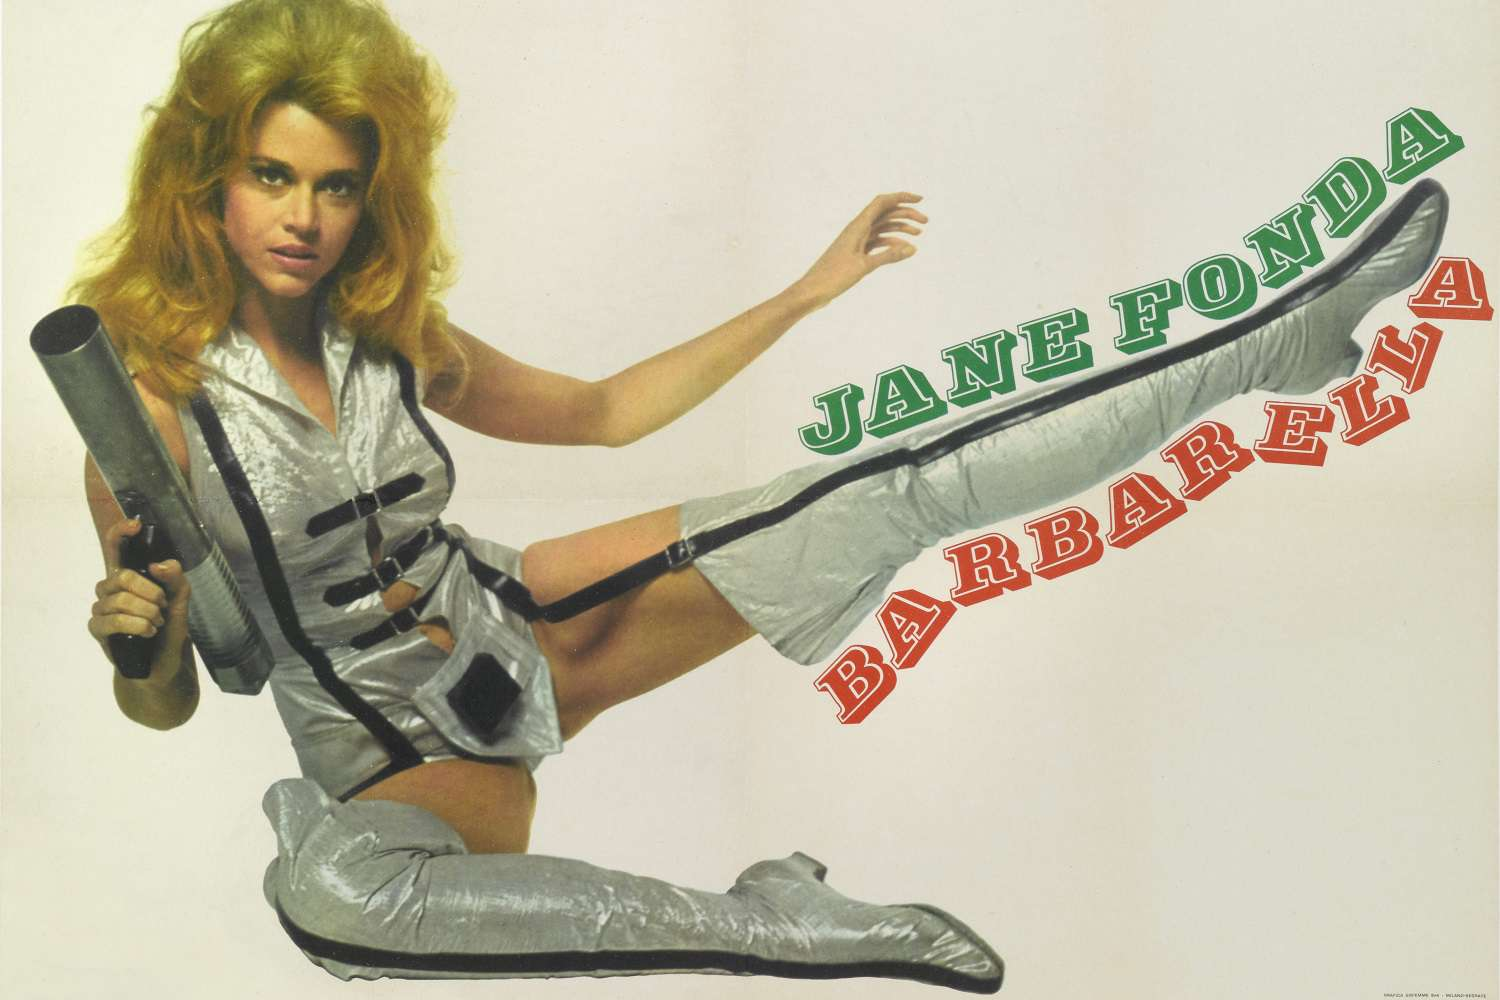 Image of actress Jane Fonda on the movie poster for the 1968 film 'Barbarella'